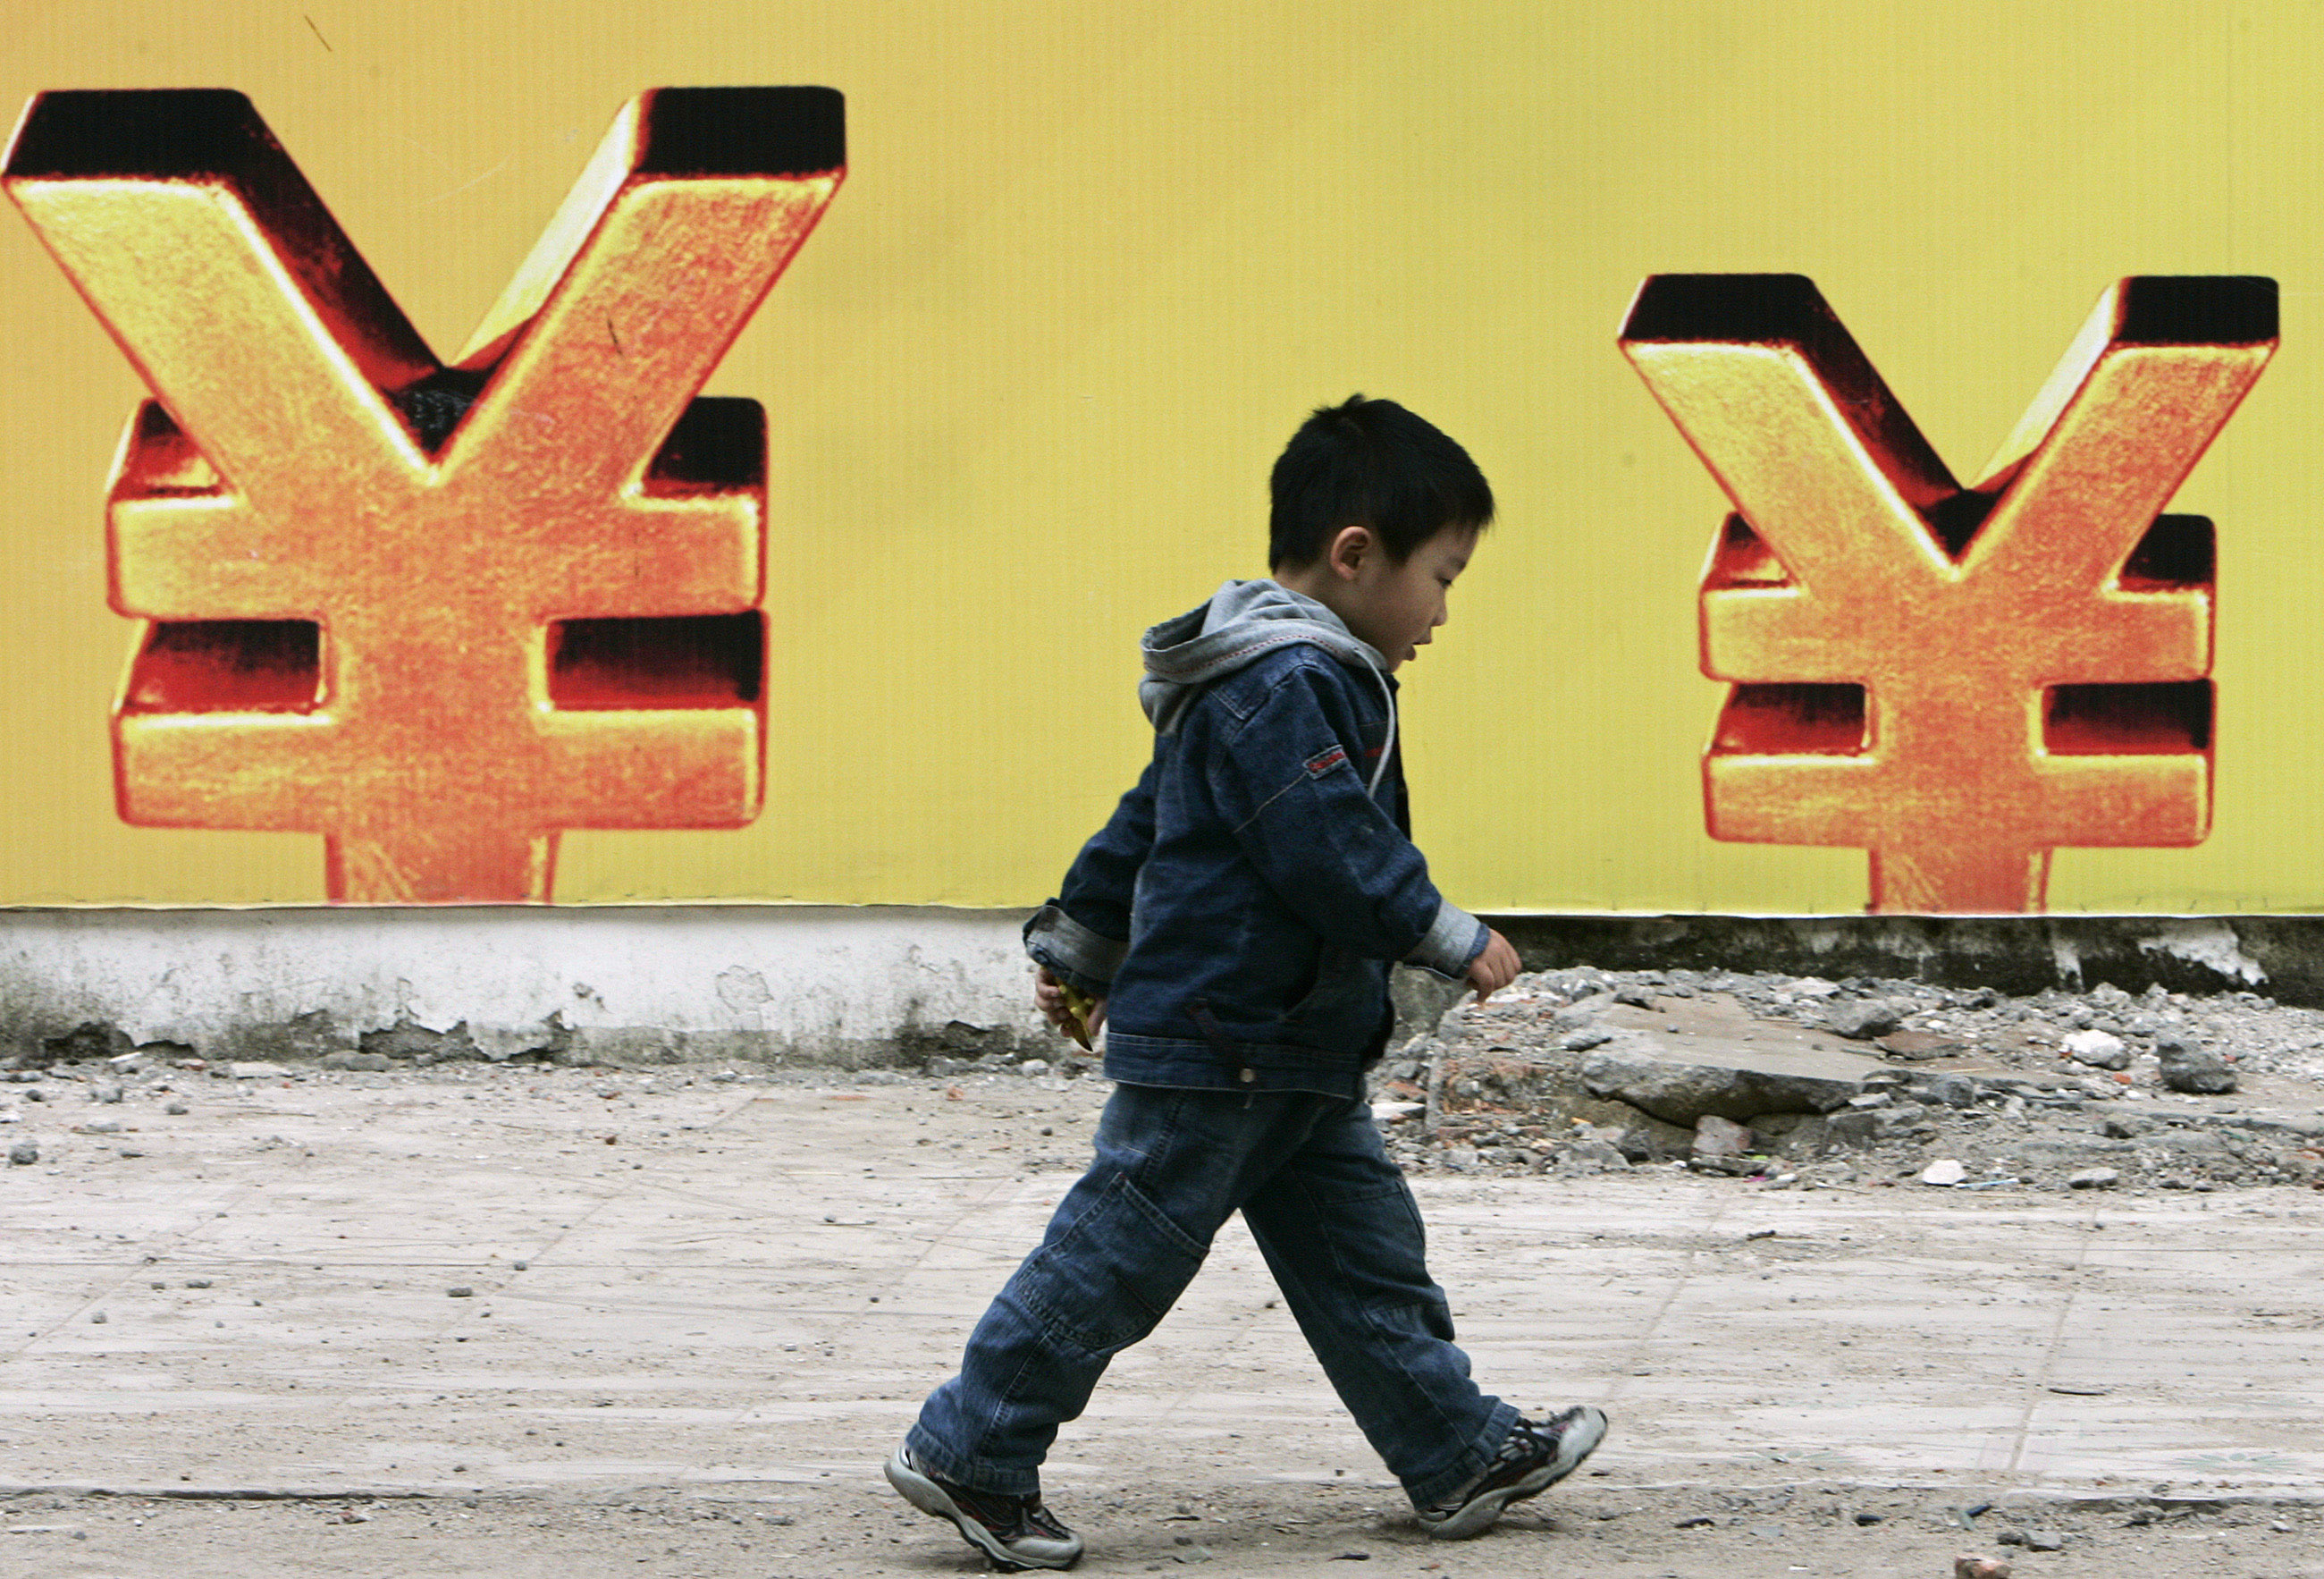 A boy walks past a billboard of the Renminbi (yuan) symbol in Haikou, south China's Hainan province, January 6, 2007. The yuan strengthened against the dollar late on Friday in line with other major Asian currencies, but trading remained sluggish after the new year holiday. REUTERS/Vito Lee (CHINA) - RTR1KX9M